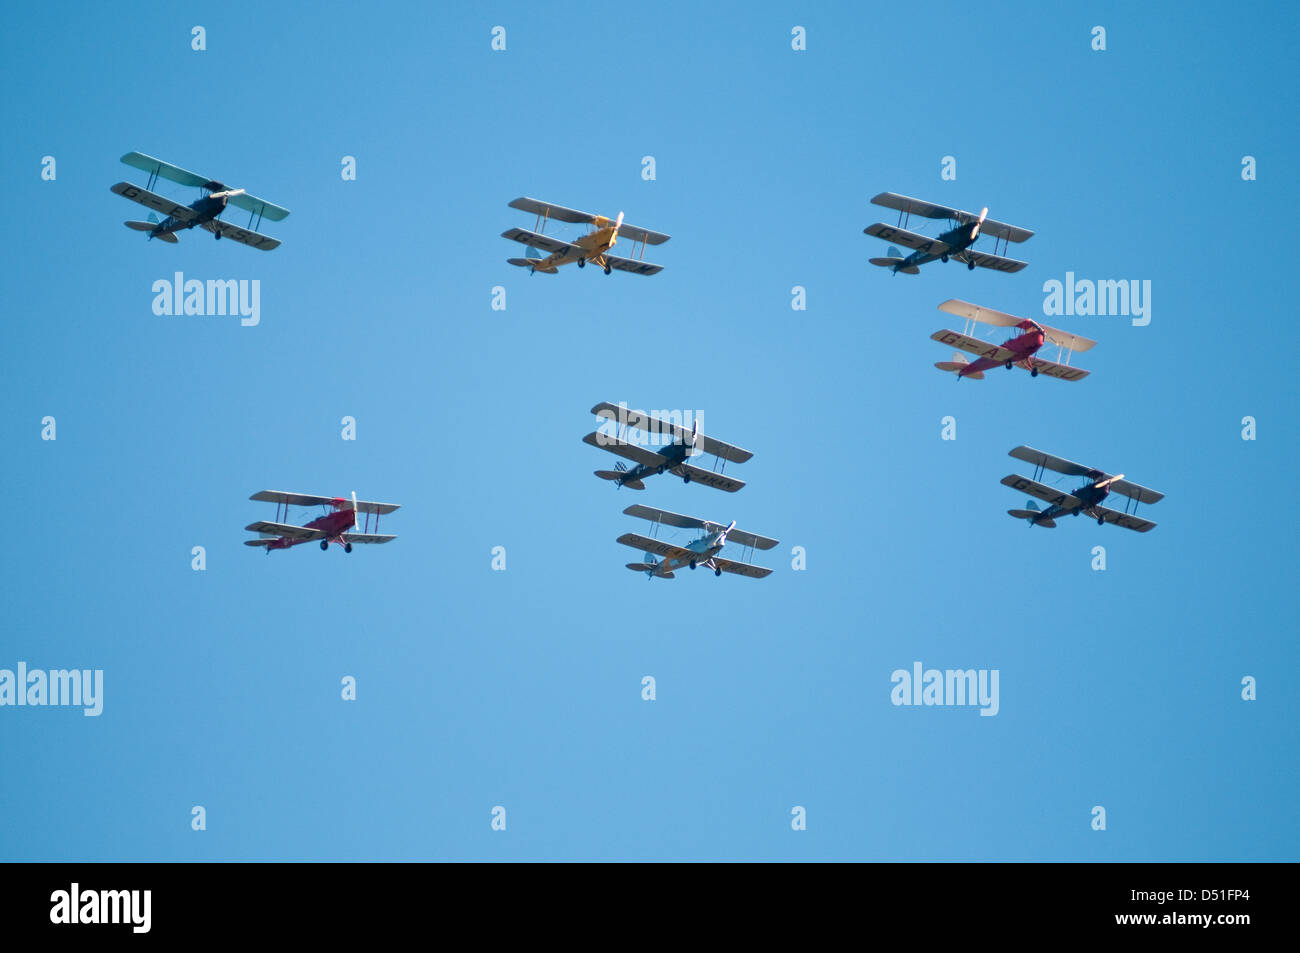 A group of eight vintage bi-planes flying in formation, seen from below against a clear blue sky. - Stock Image